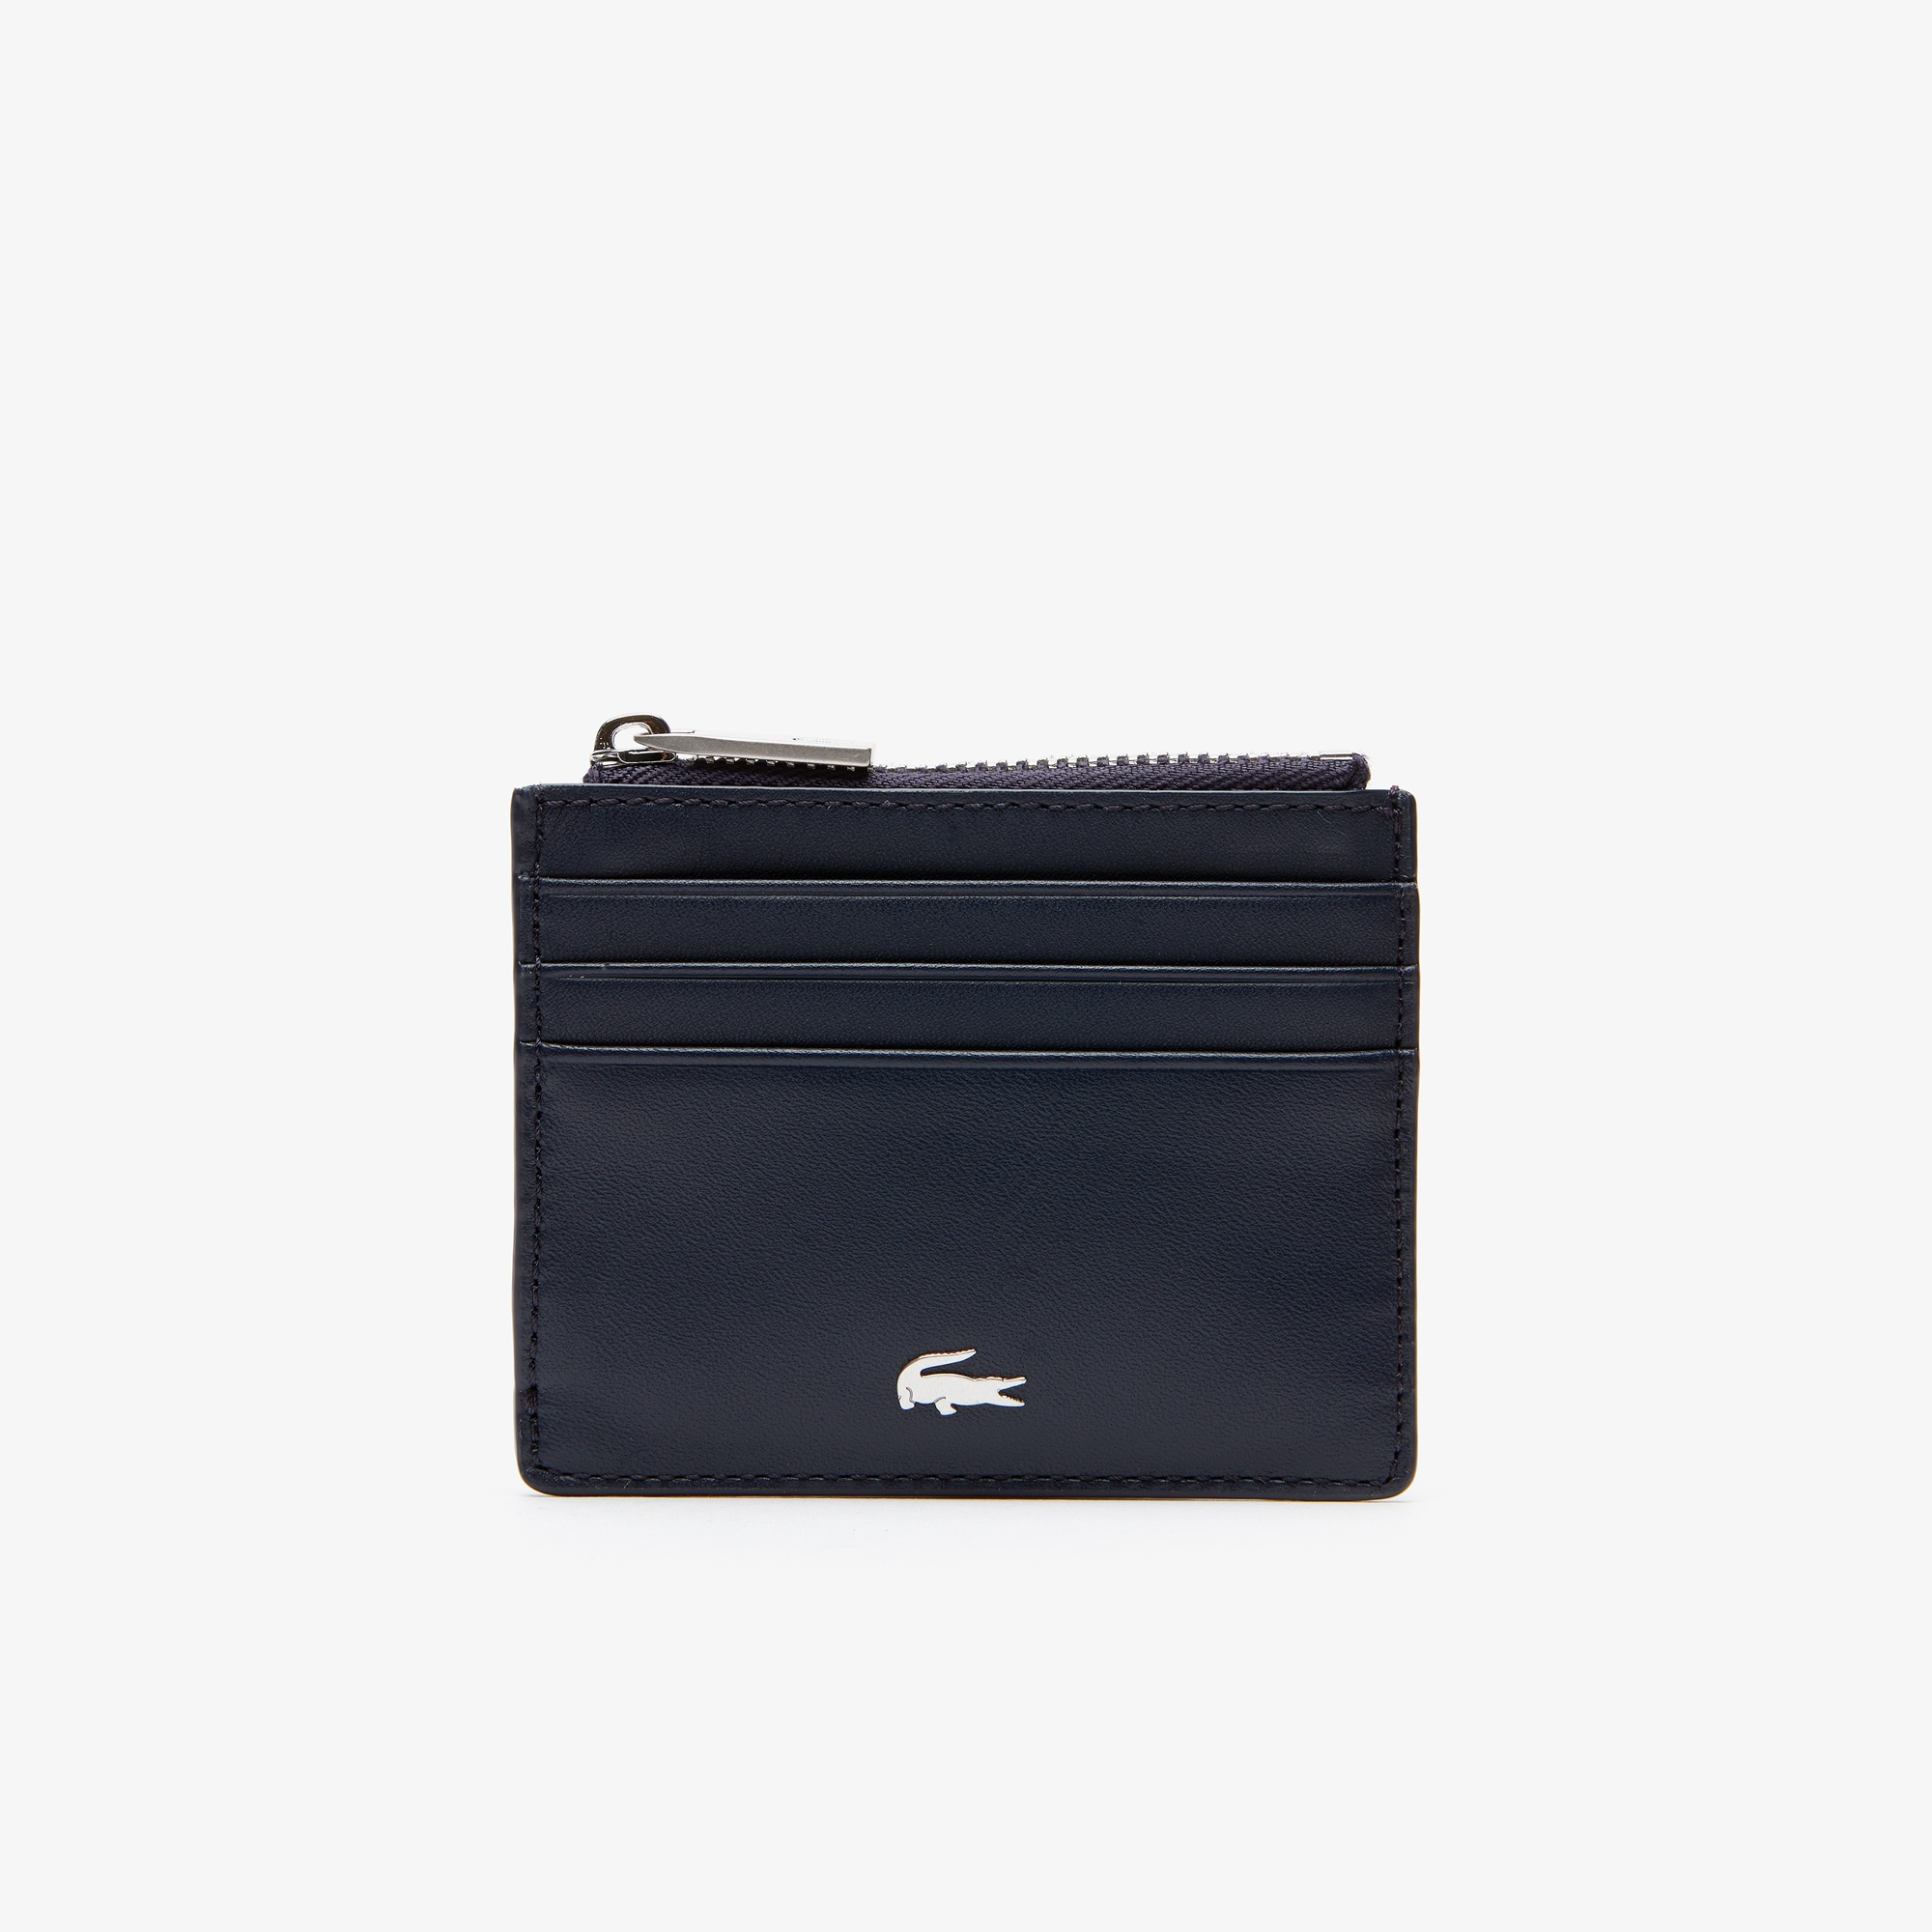 Lacoste Mens Fitzgerald Leather Card Holder